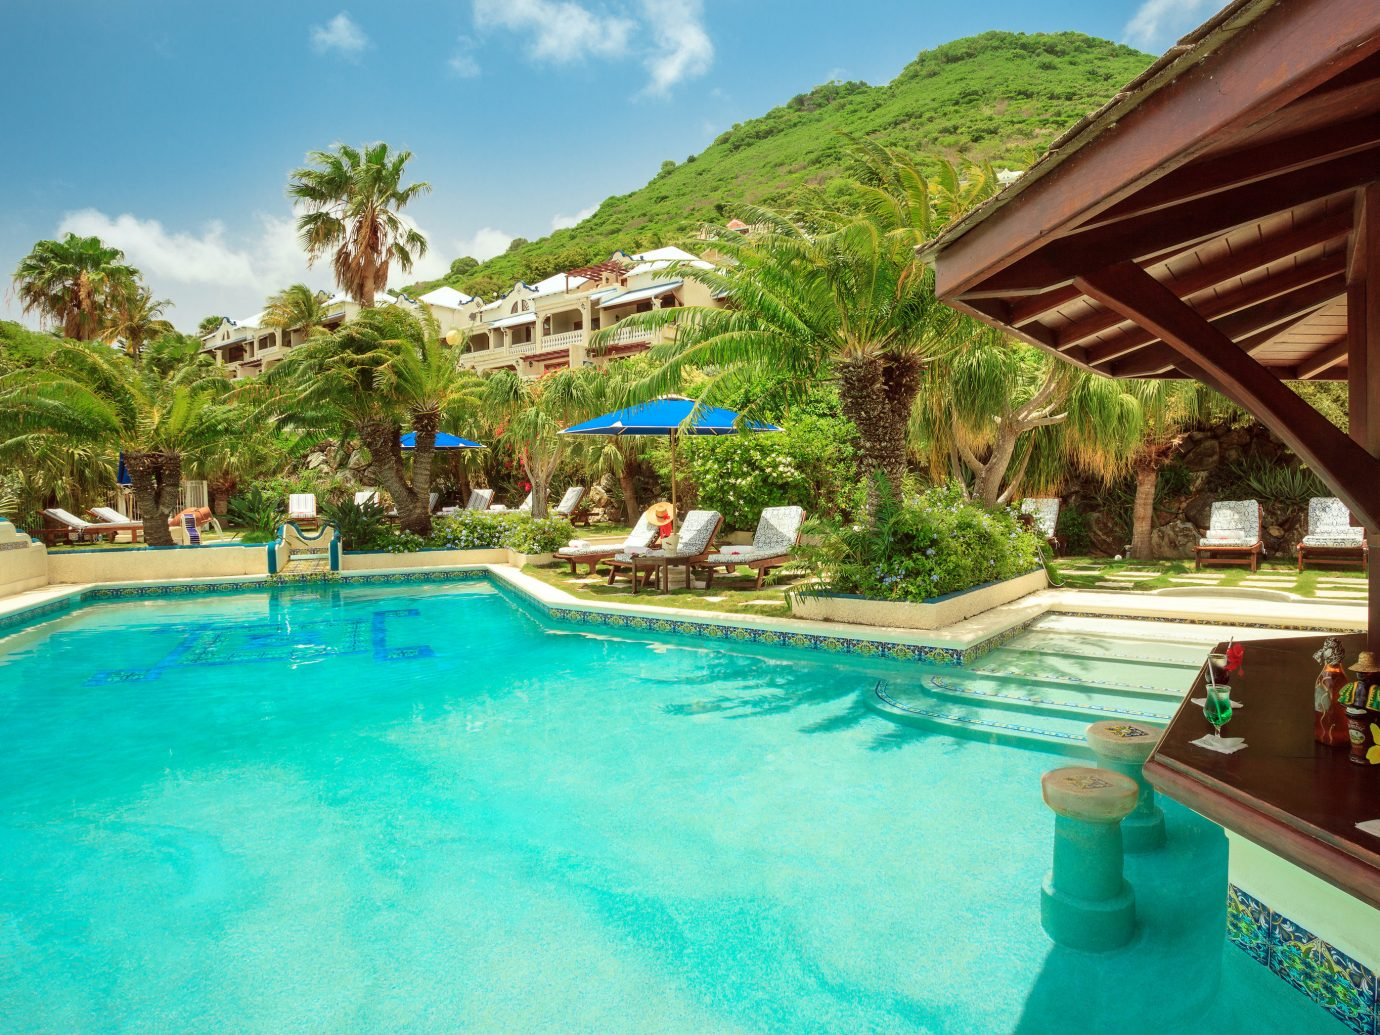 Hotels sky outdoor Resort swimming pool leisure property resort town Pool estate vacation water real estate palm tree Villa arecales tropics caribbean tree tourism blue Lagoon hotel bay swimming